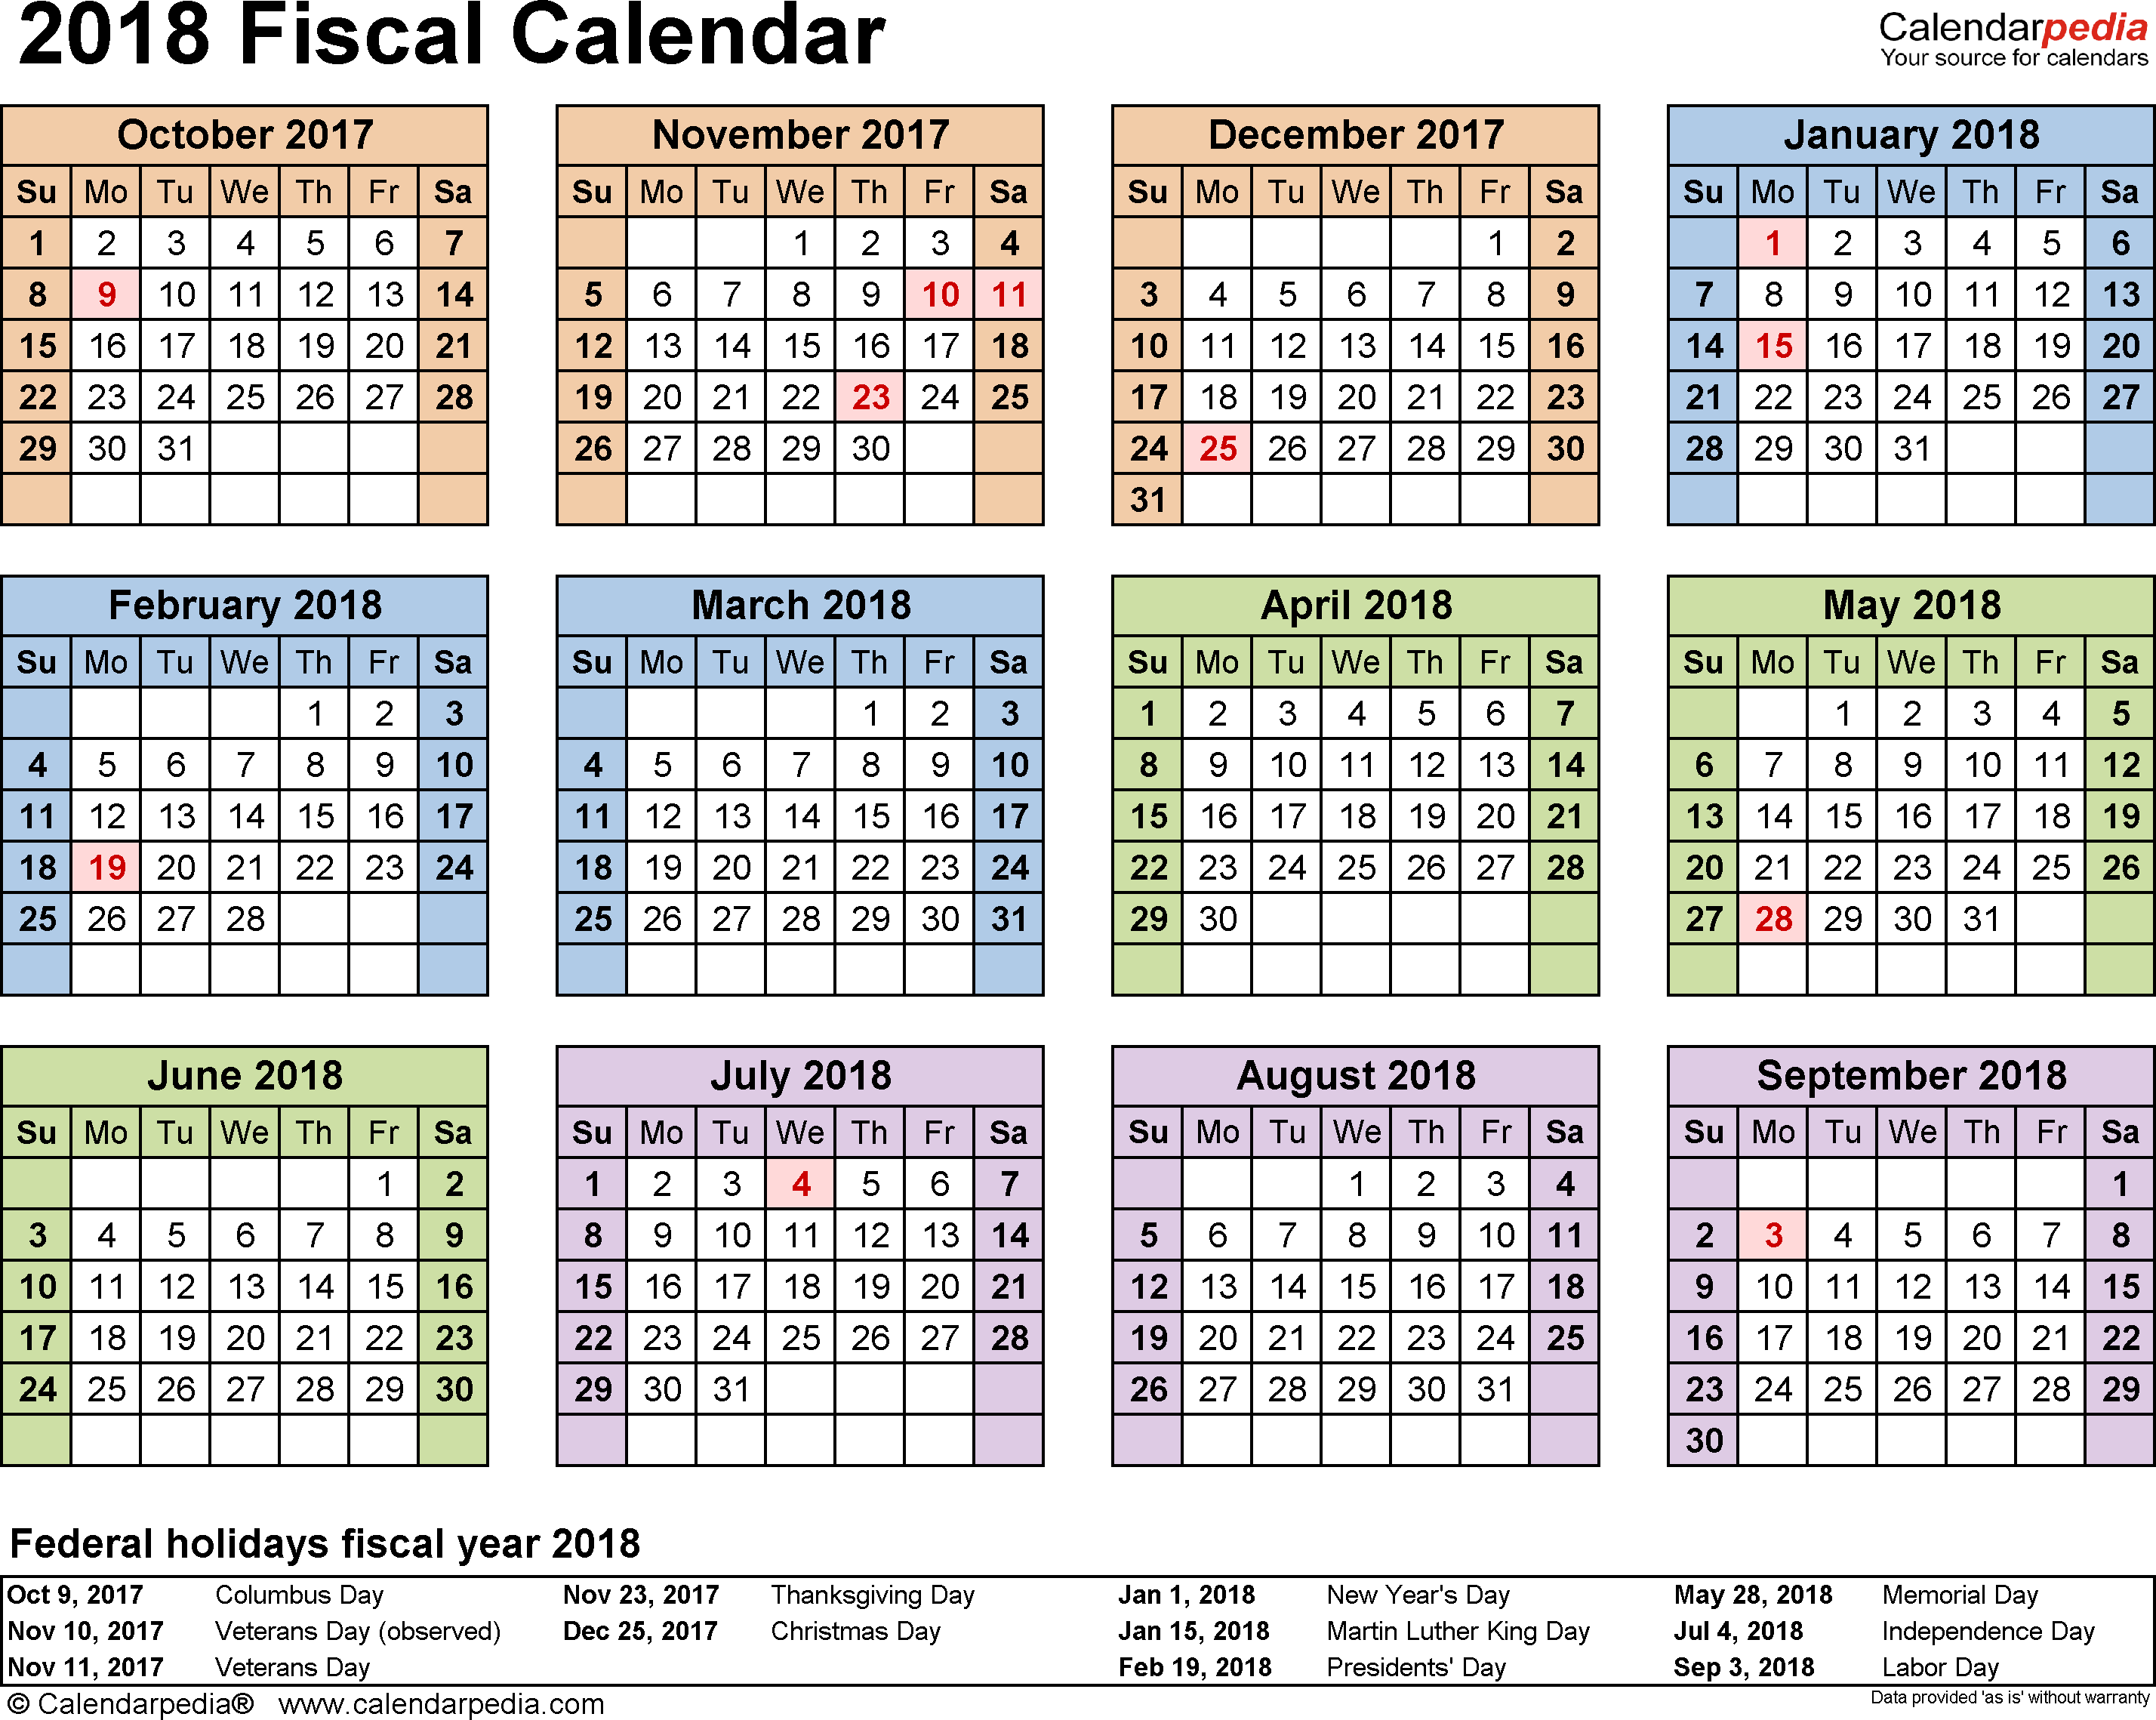 Template 4: Fiscal year calendar 2018 for Word, landscape orientation, year at a glance, 1 page